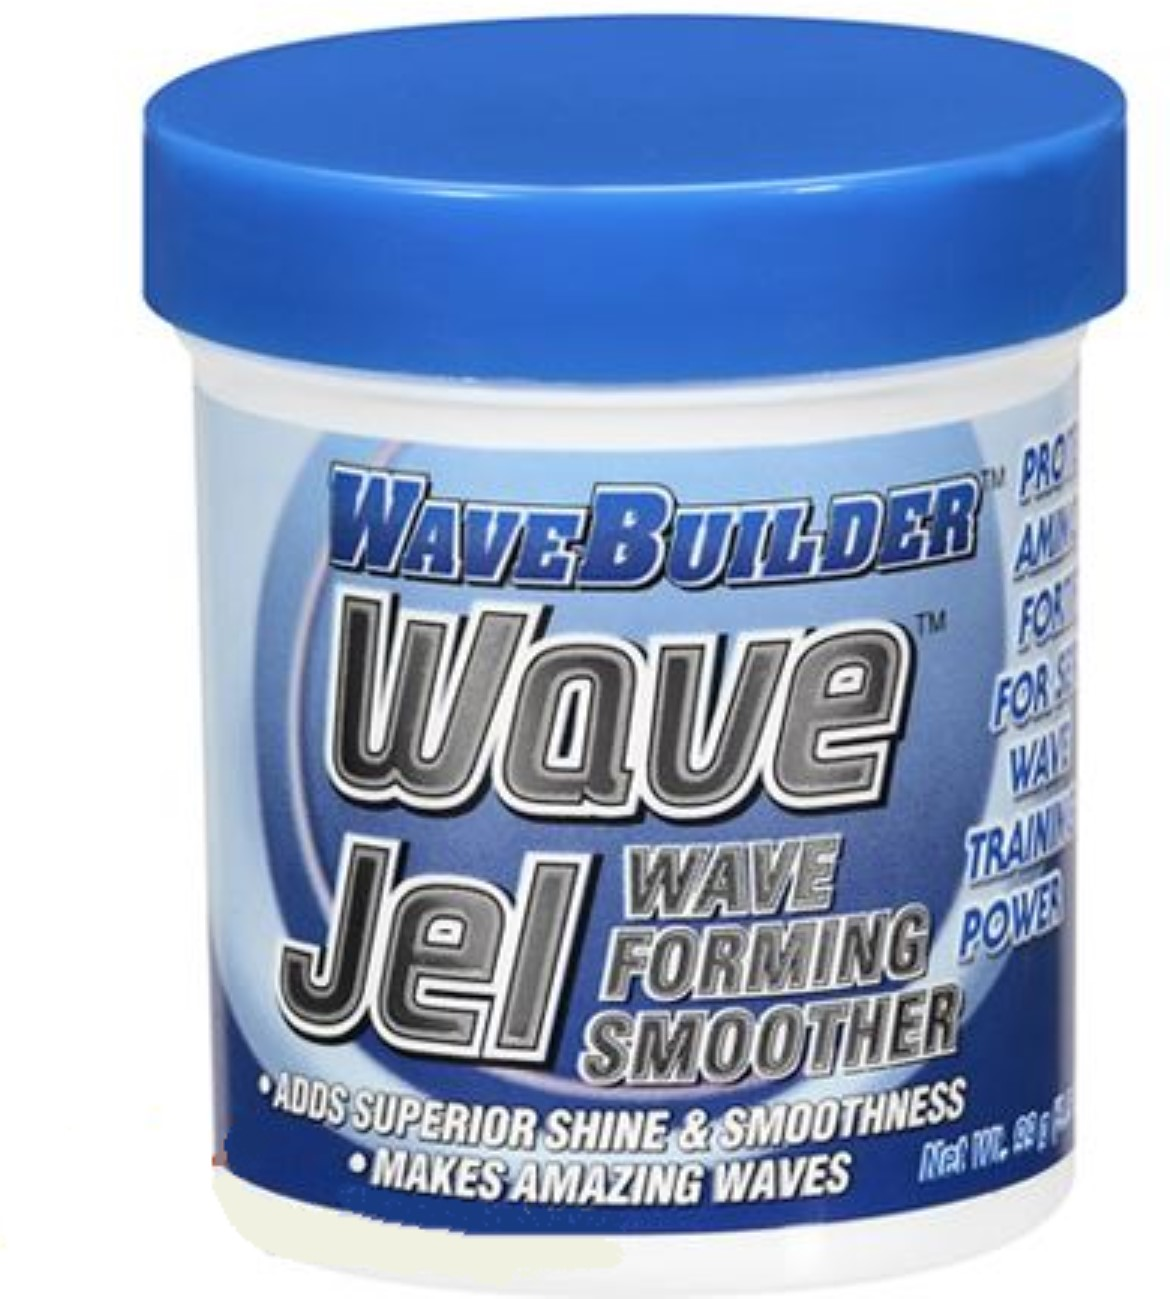 WaveBuilder Wave Jel Smoother Wave Forming Smoother, 3 oz (Pack of 4)